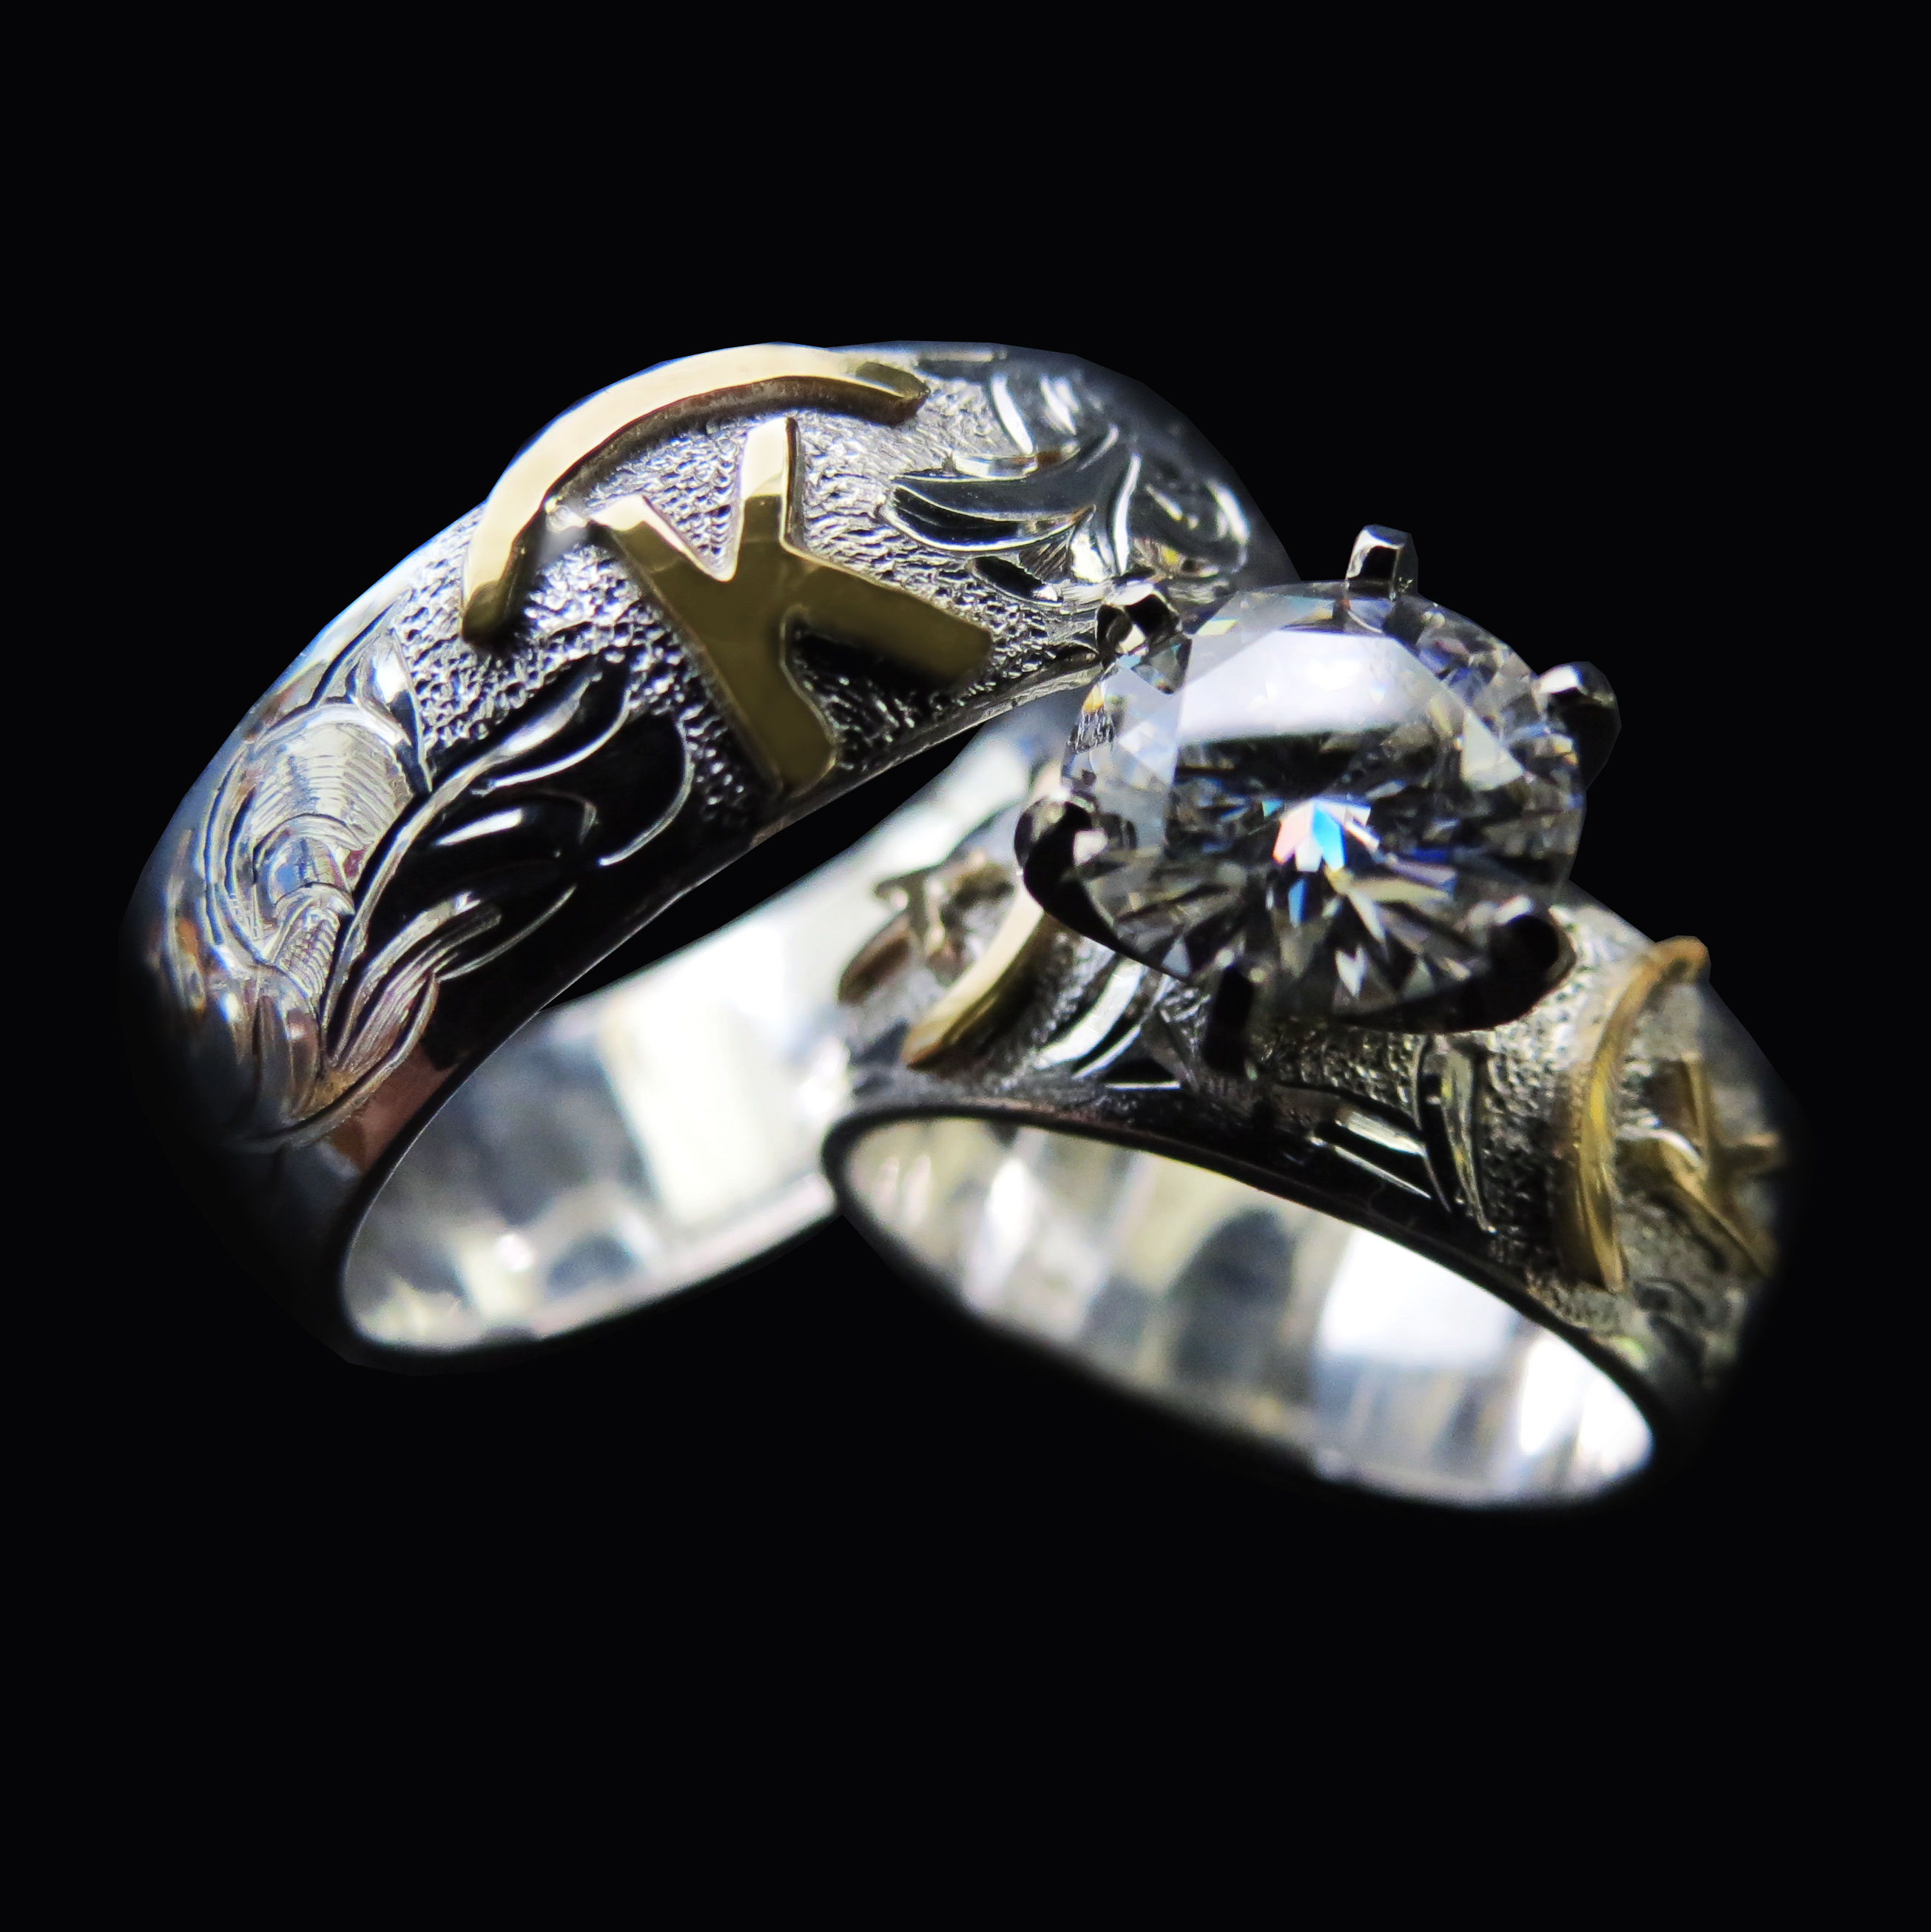 unique rings pin custom eco wood wedding handcrafted design blacksmith